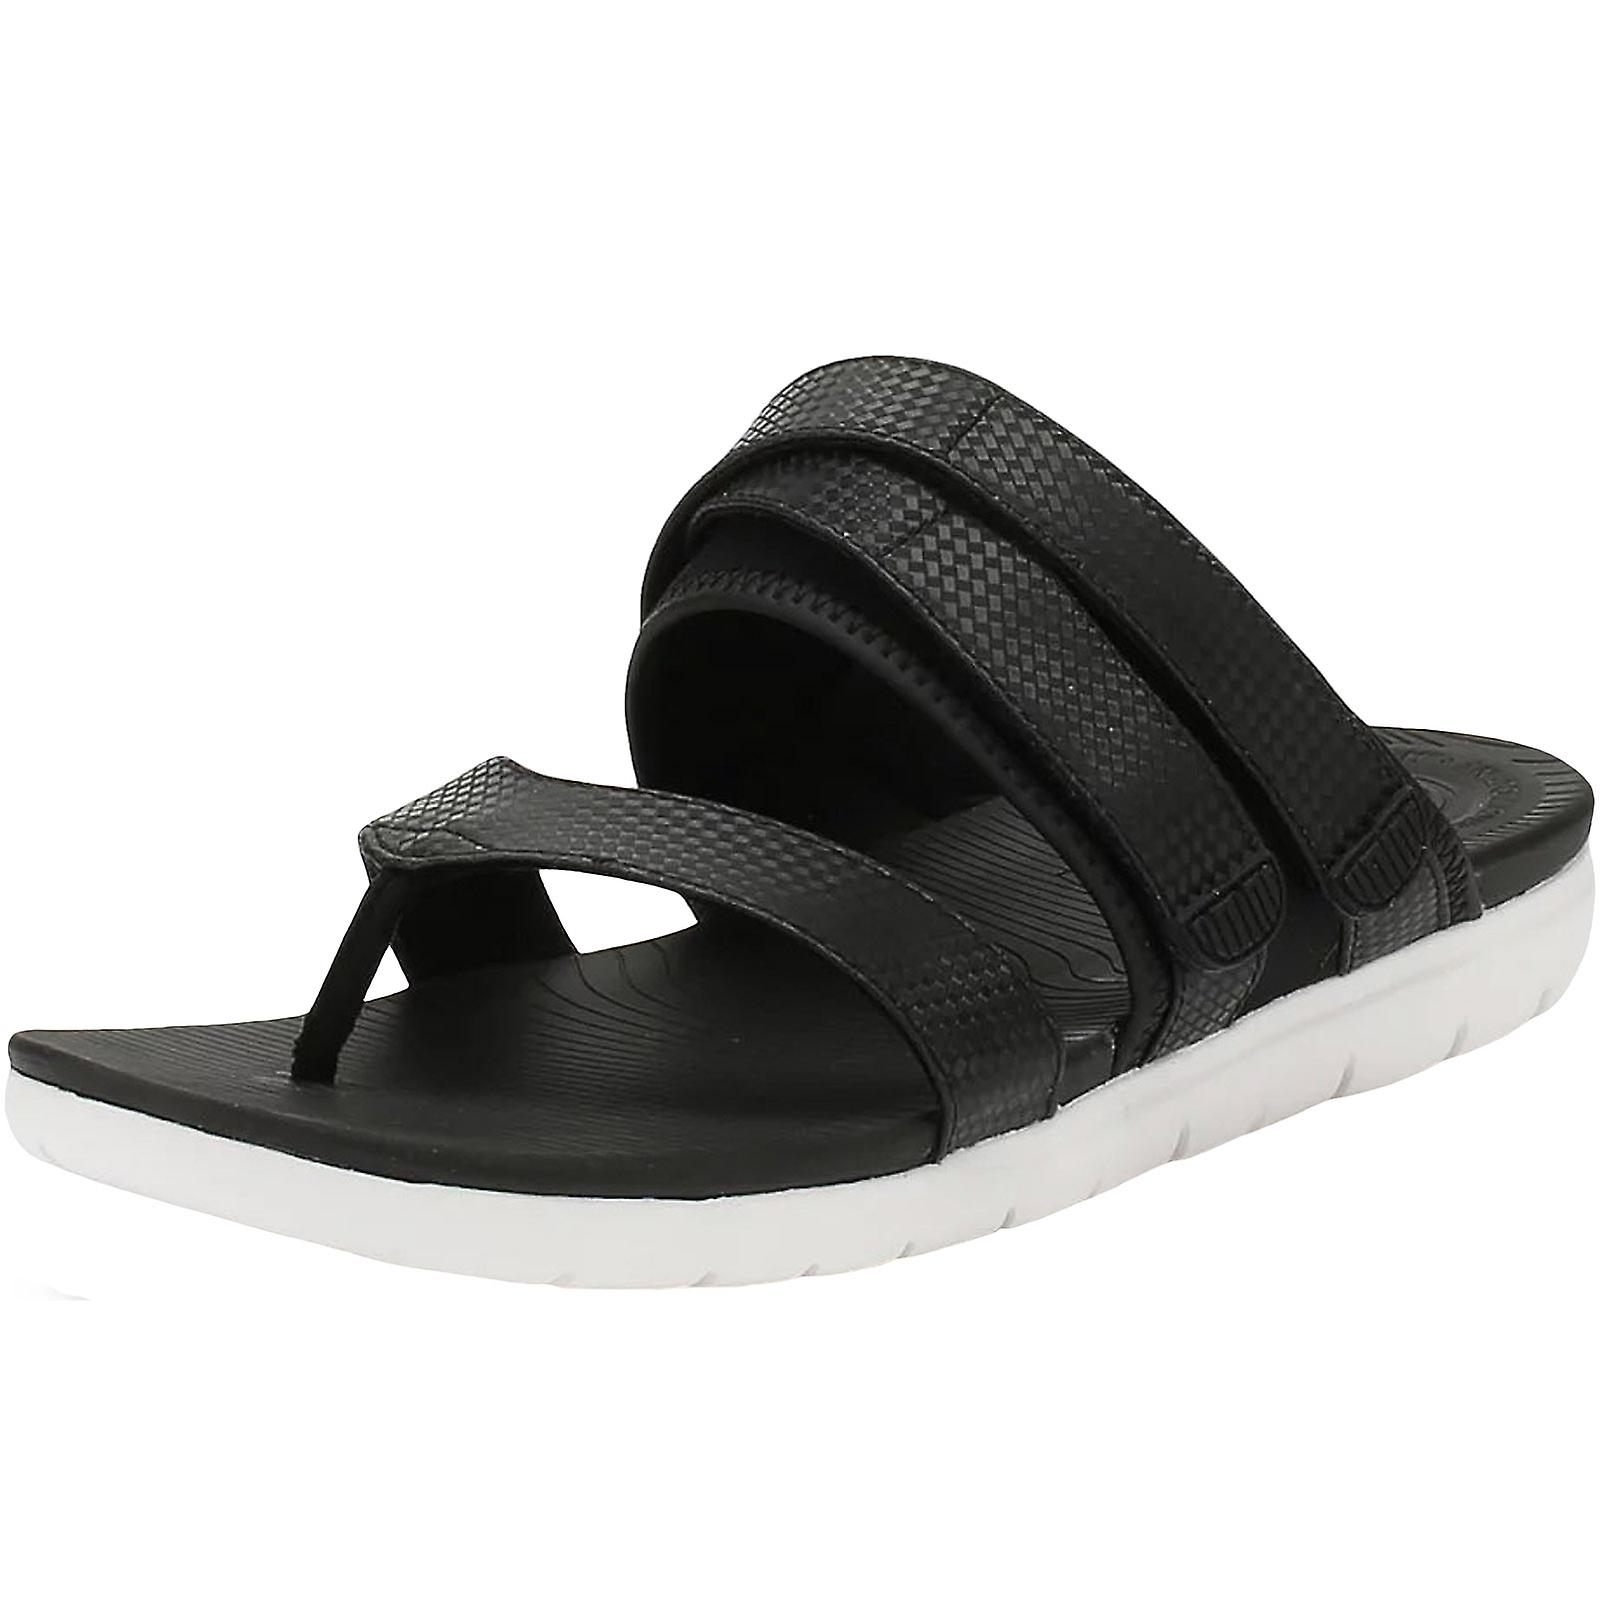 Fitflops Womens Neoflex Toe-thong Casual Summer Holiday Slide Sandals Flip Flops